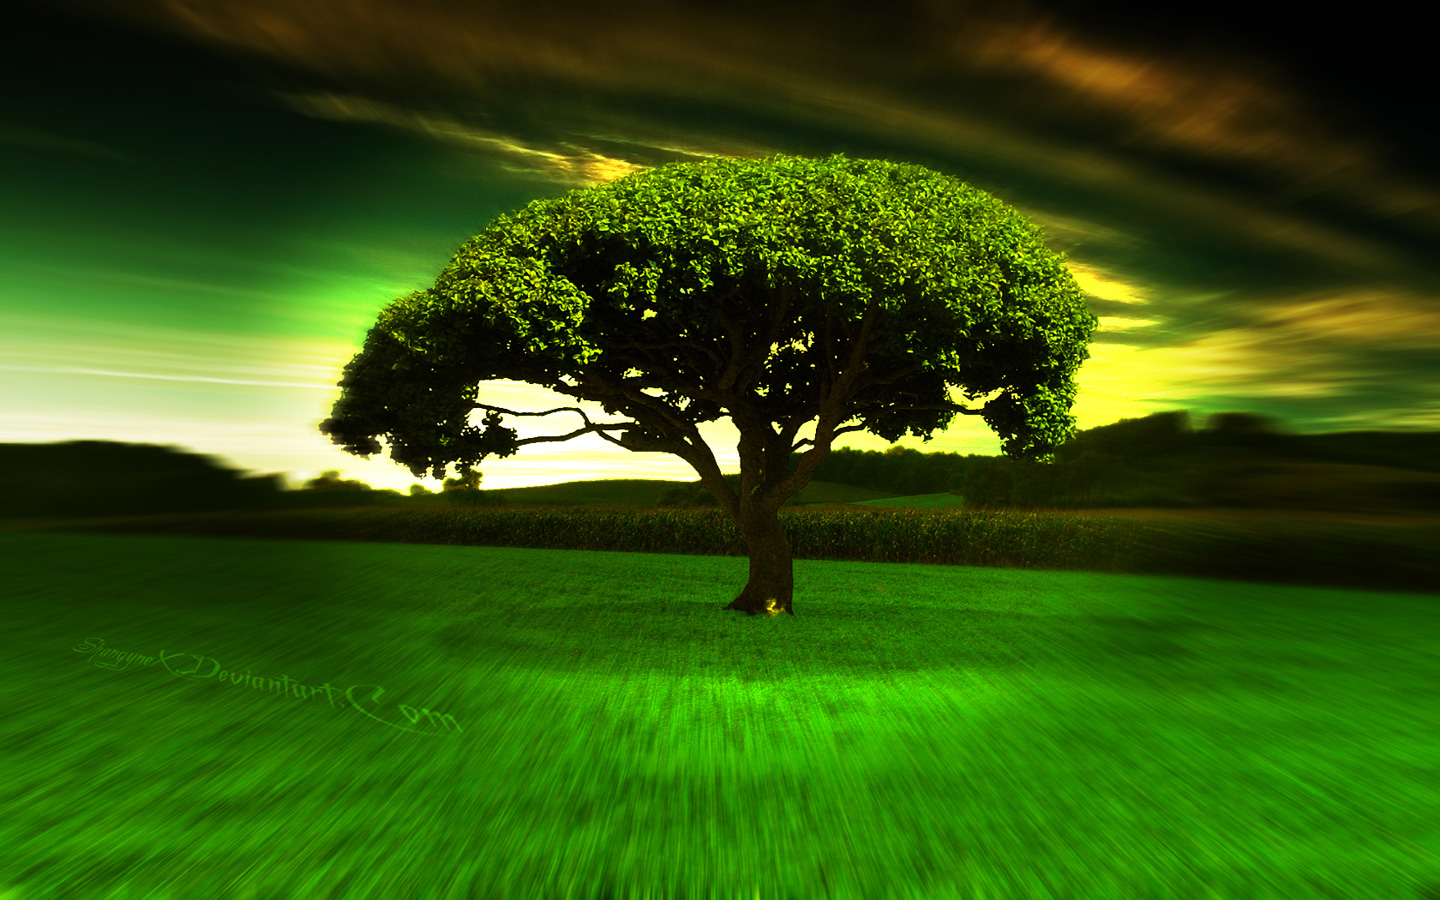 hypno tree 2 hd widescreen wallpapers 1440x900jpeg 1440x900